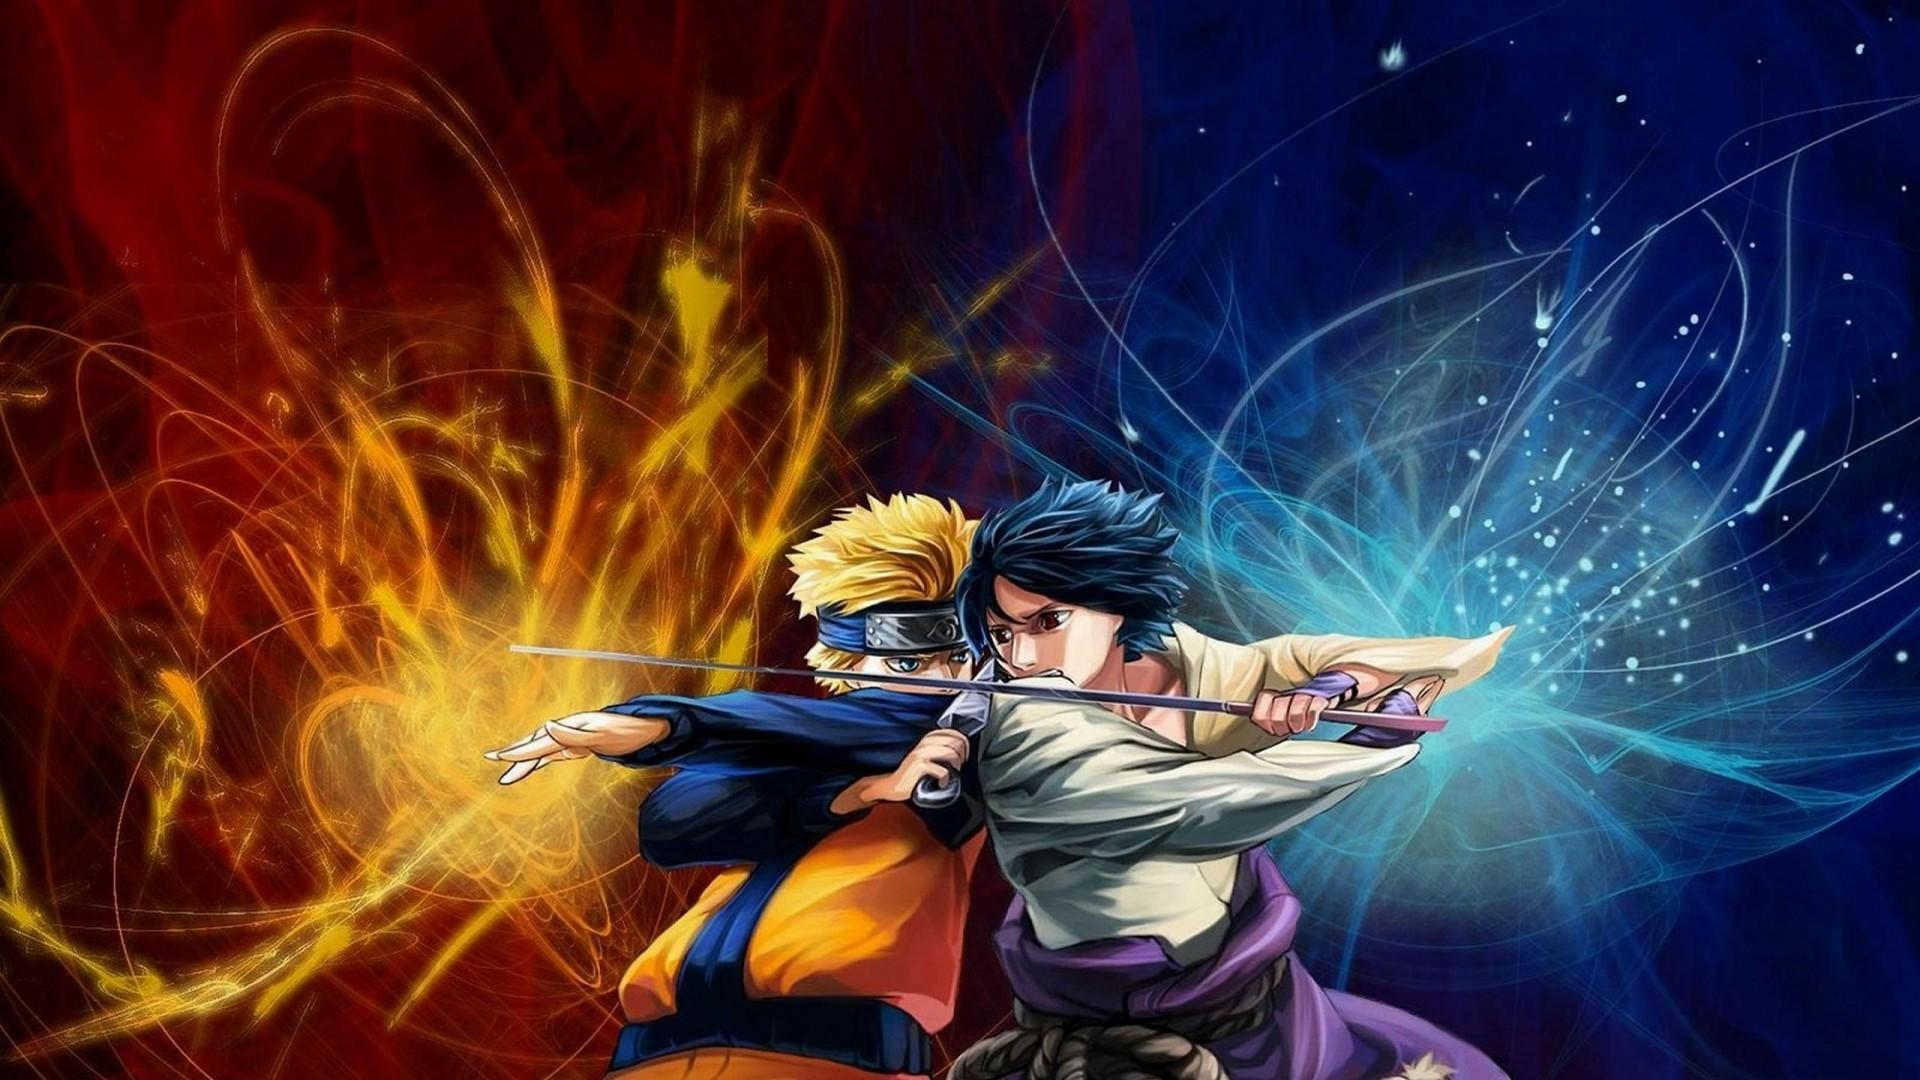 Naruto Kyuubi Live Wallpaper APK Download Rasengan For Android 1920x1080